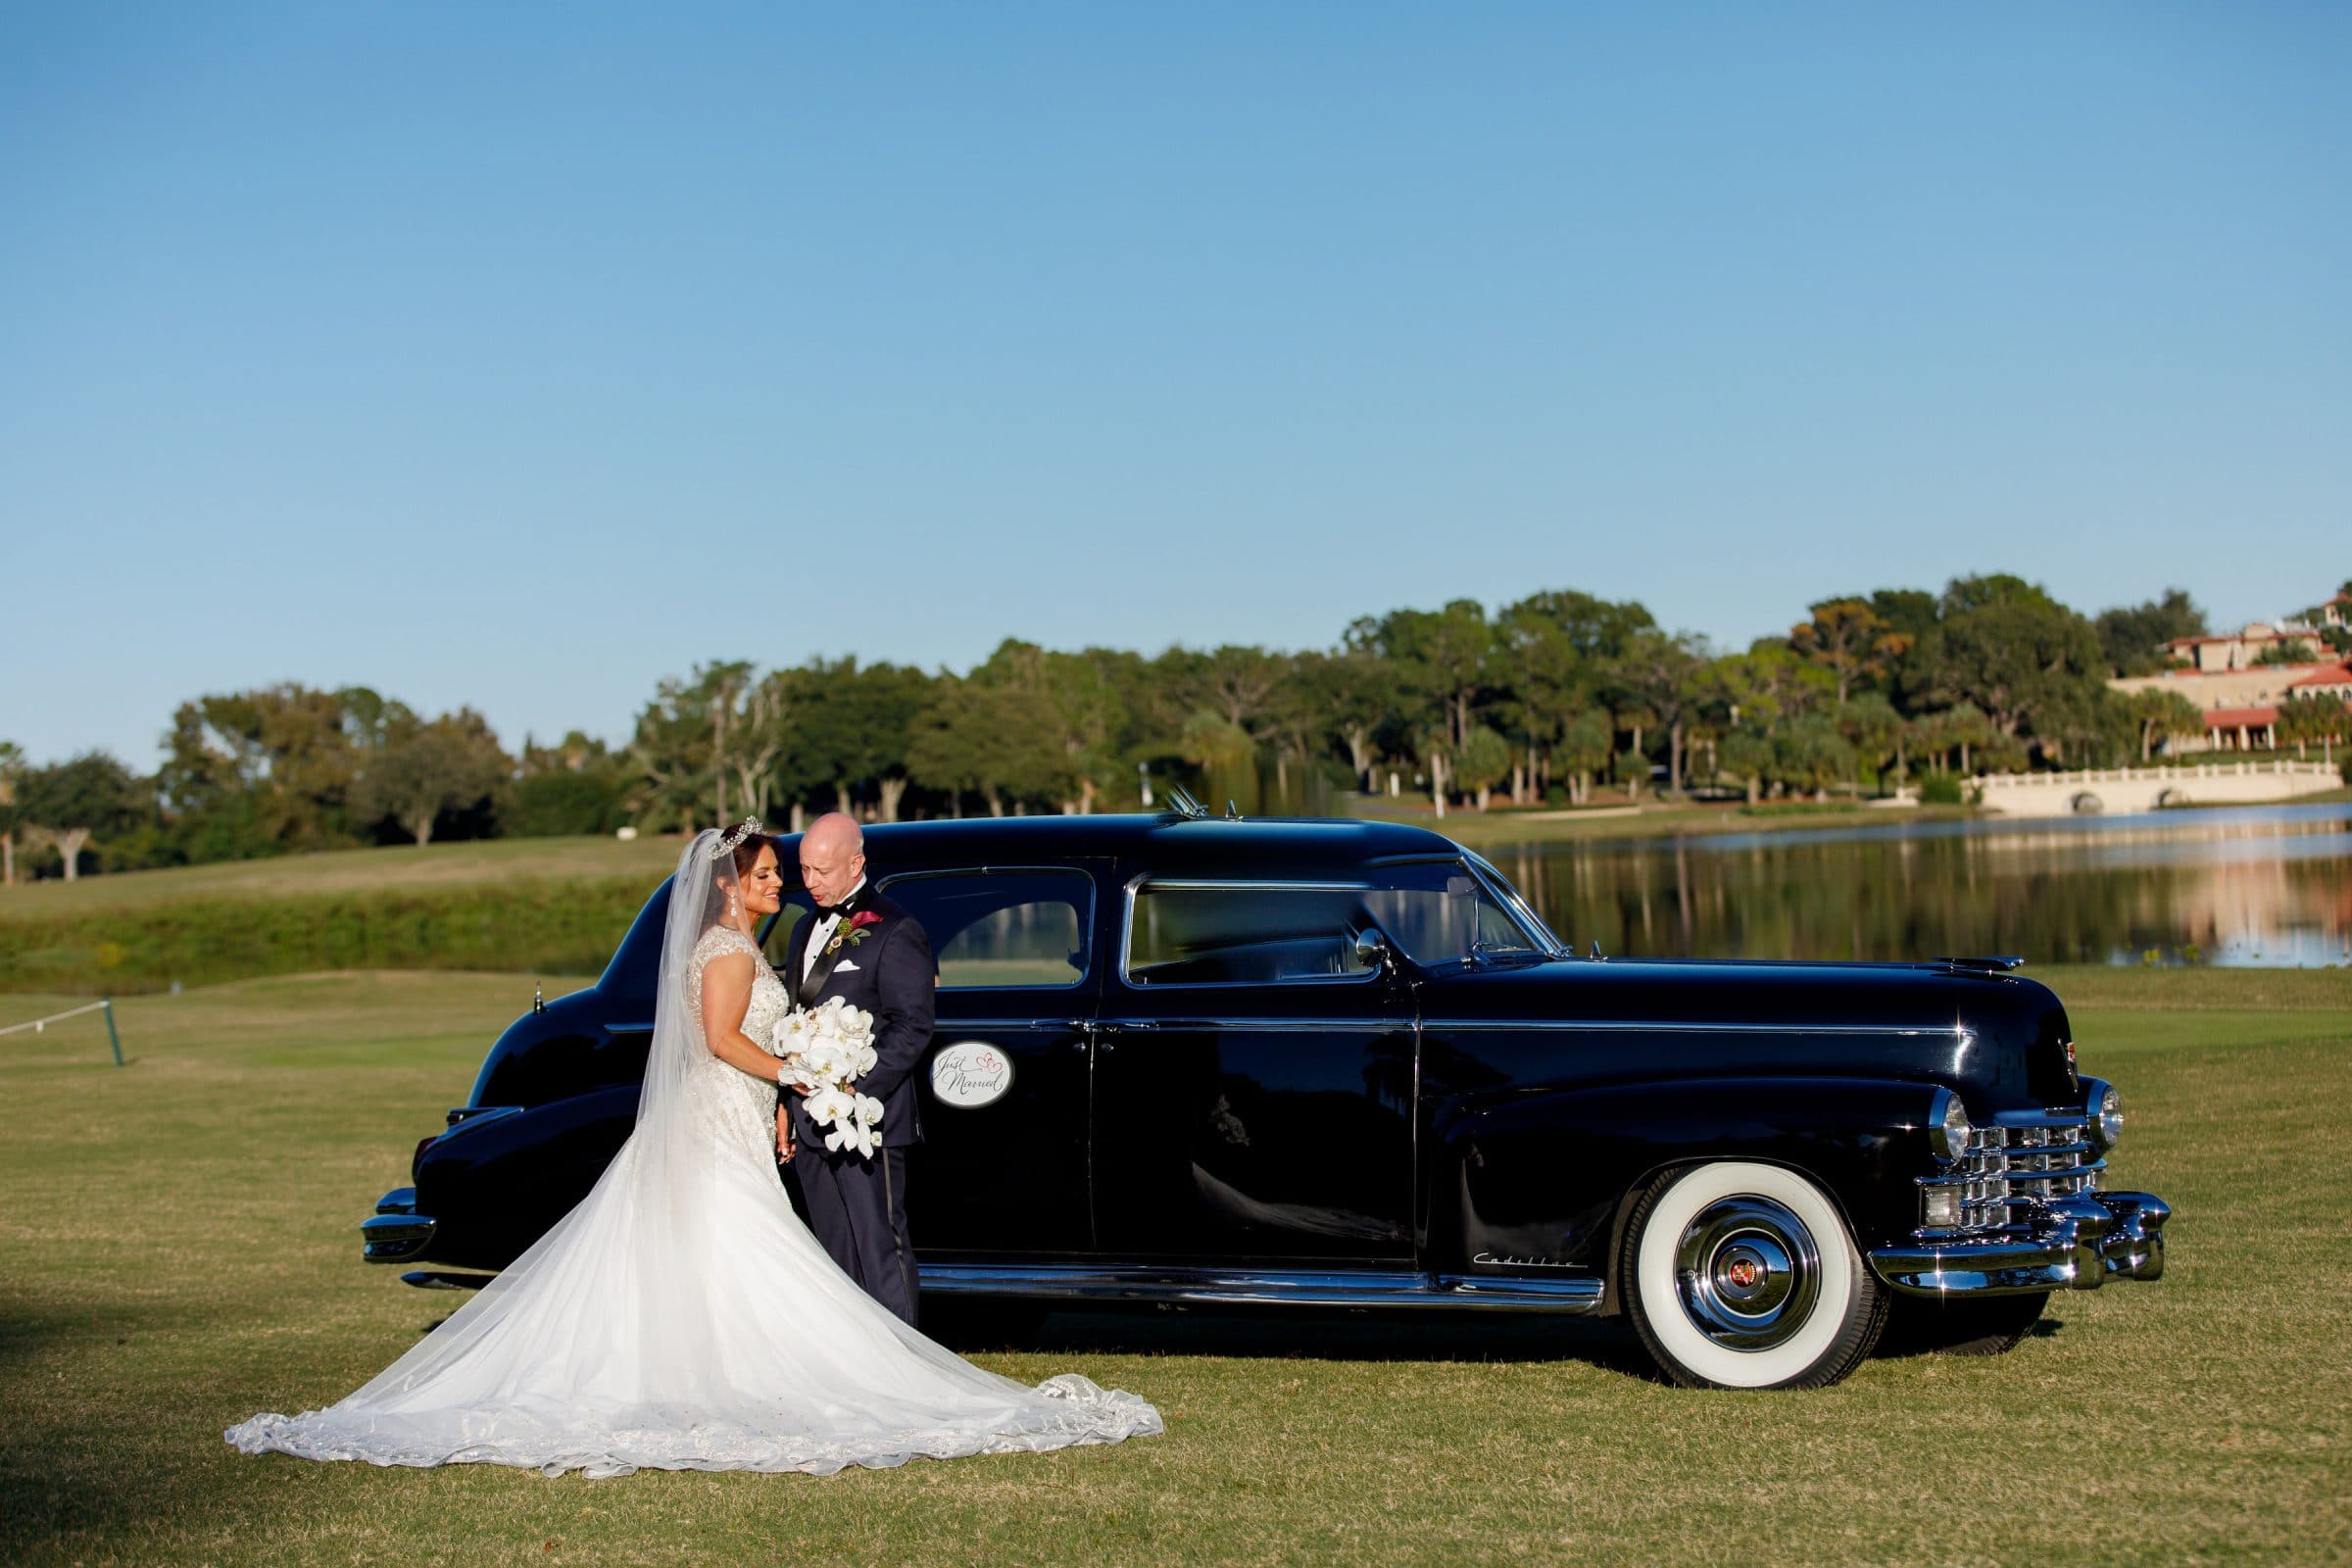 Bride and Groom in front of antique car on golf course at Mission Inn Resort